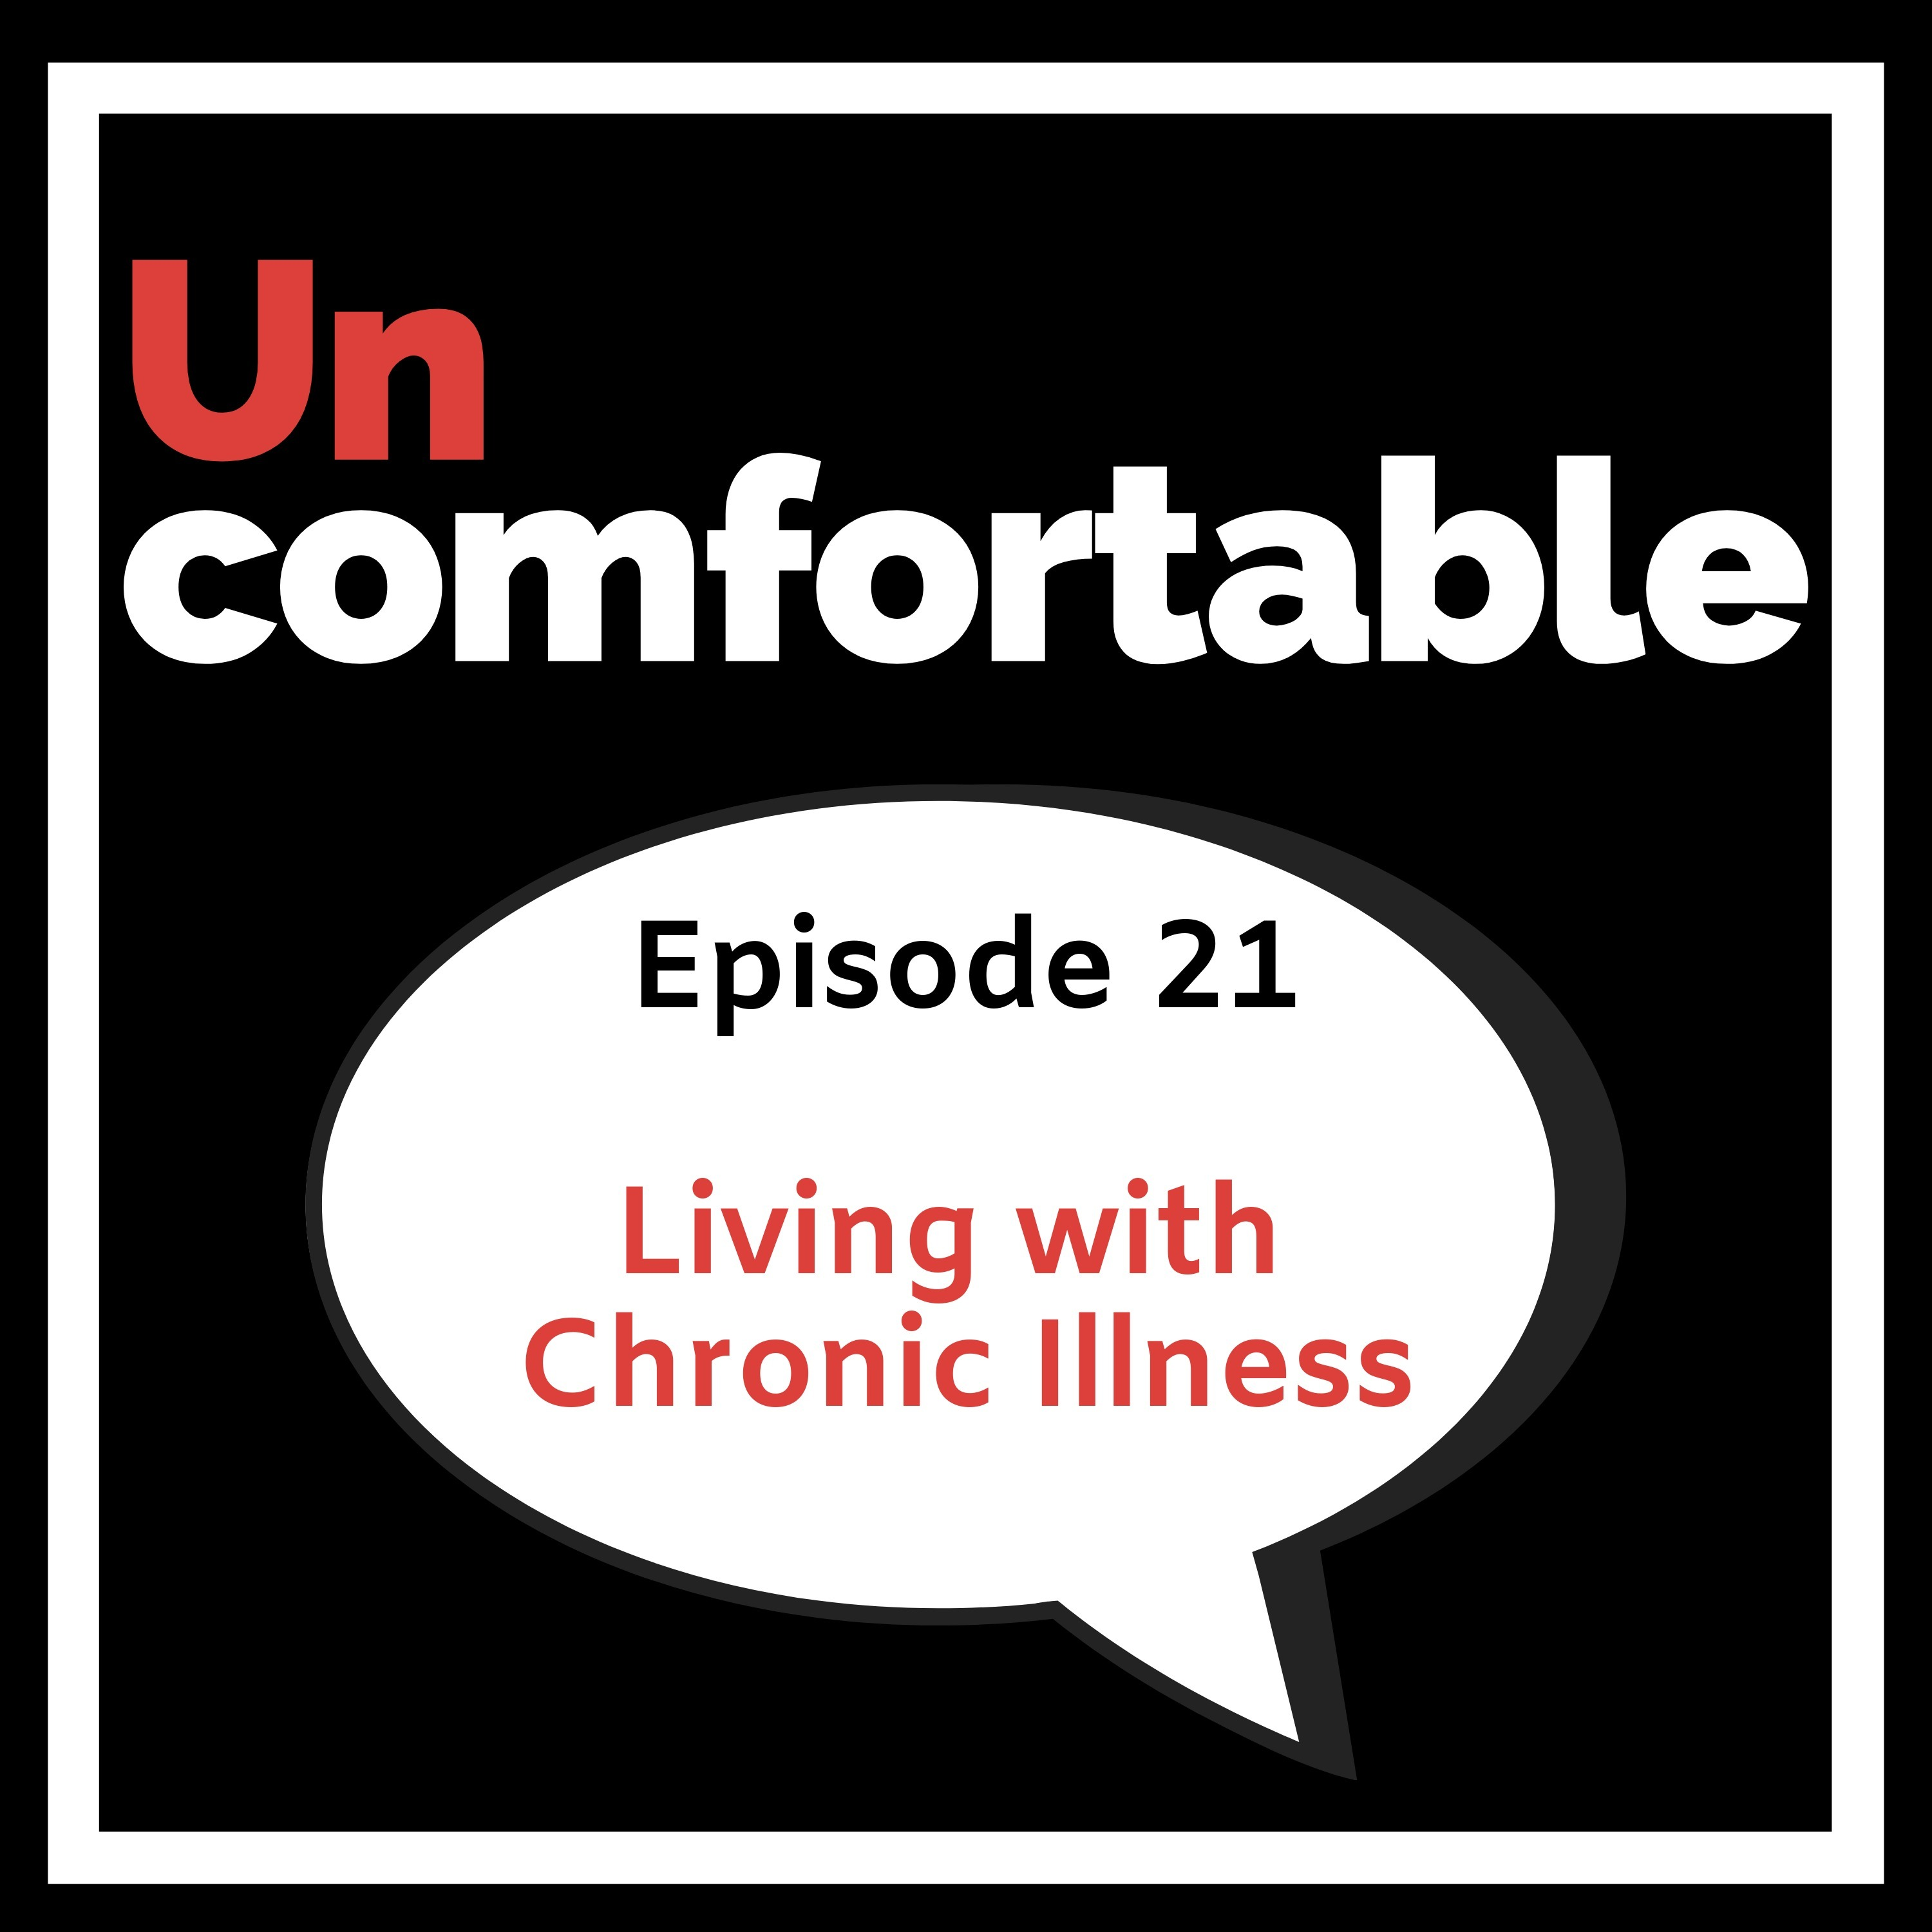 Episode 21 - Living with a Chronic Illness